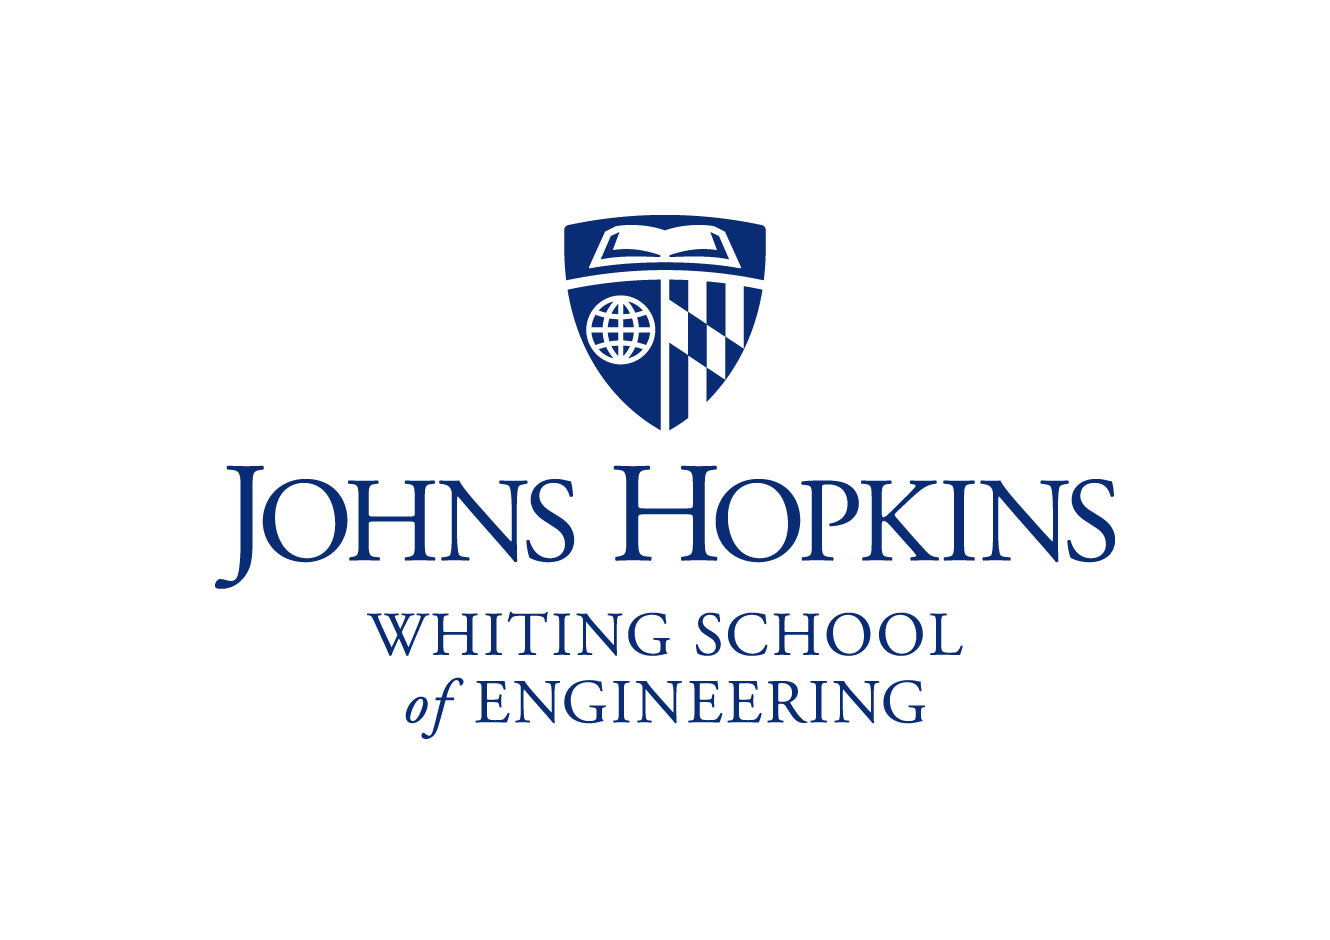 Whiting School of Engineering